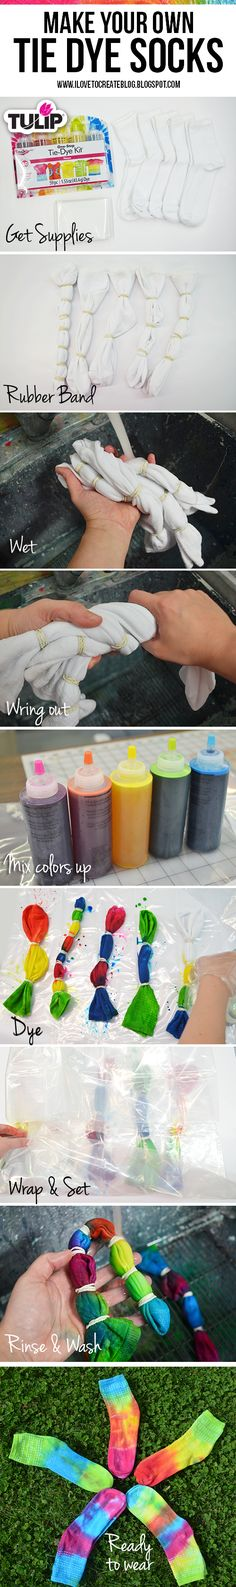 YOUR KIDS WILL GO CRAZY OVER THIS!!! Make your own tie dye socks with Tulip One-Step Tie-Dye!